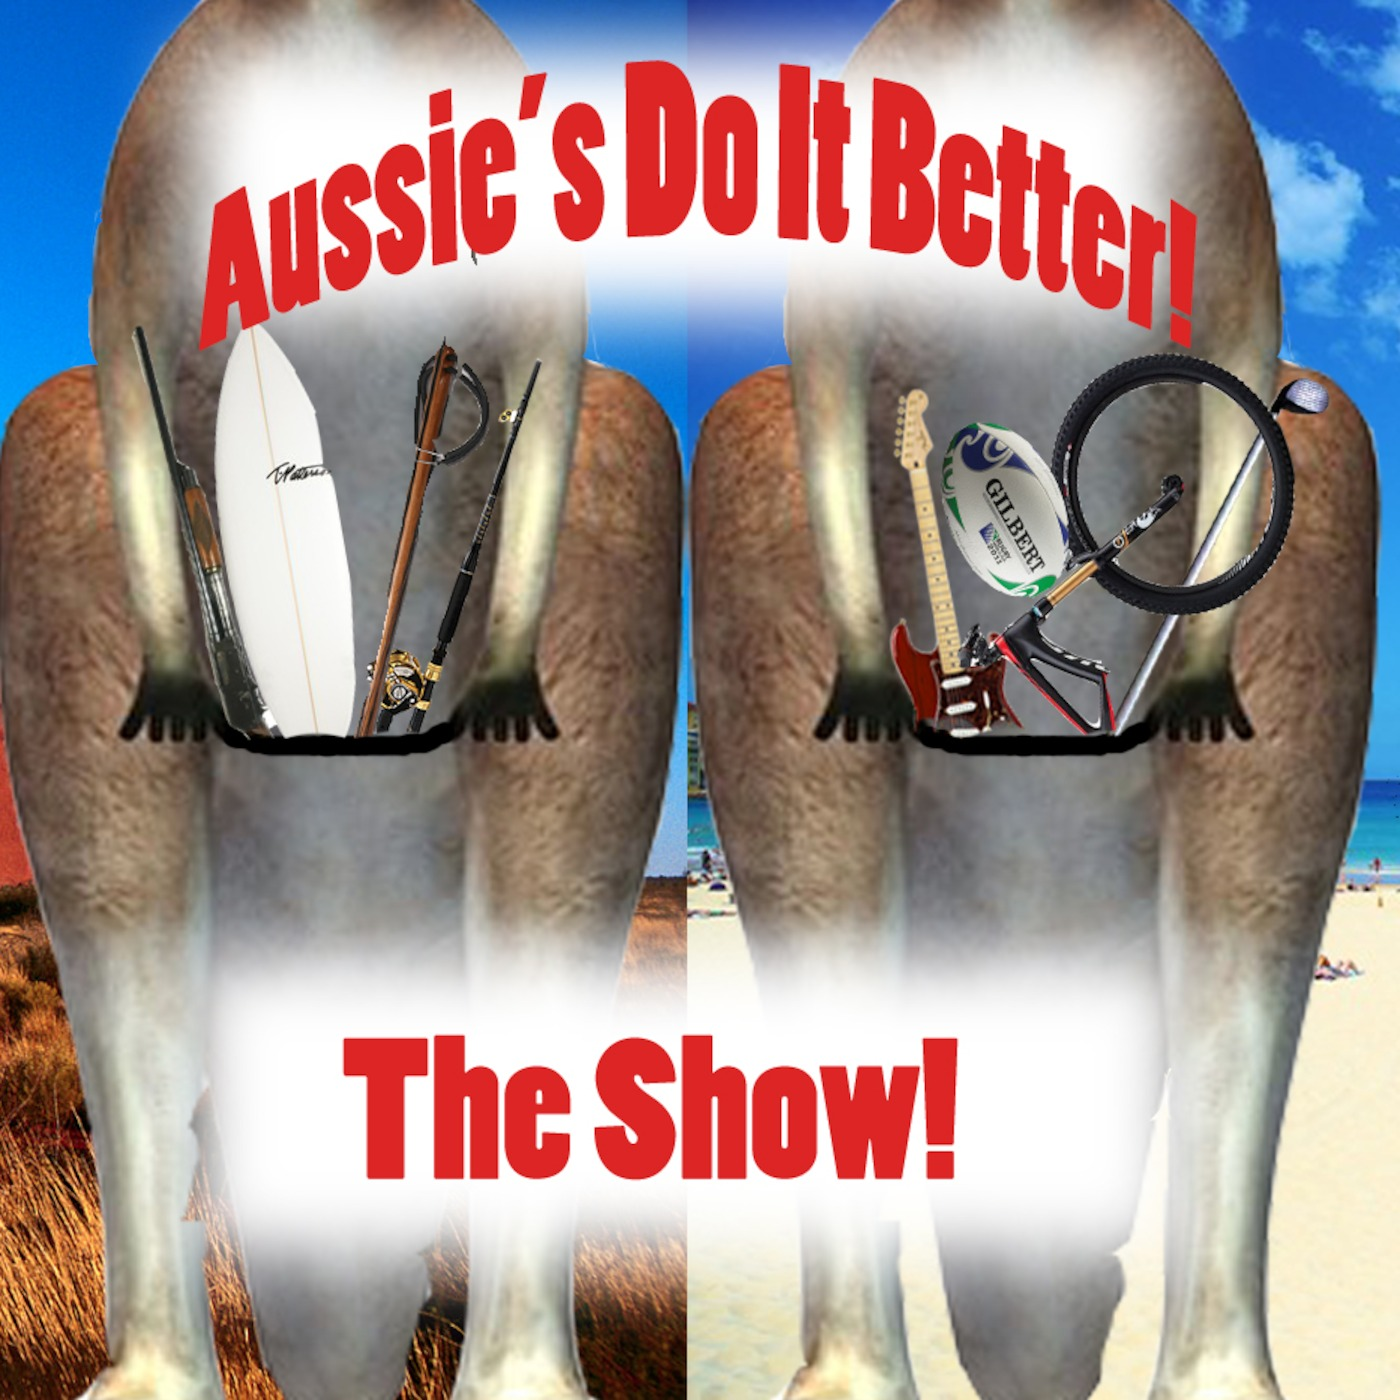 Aussie's Do It Better!!